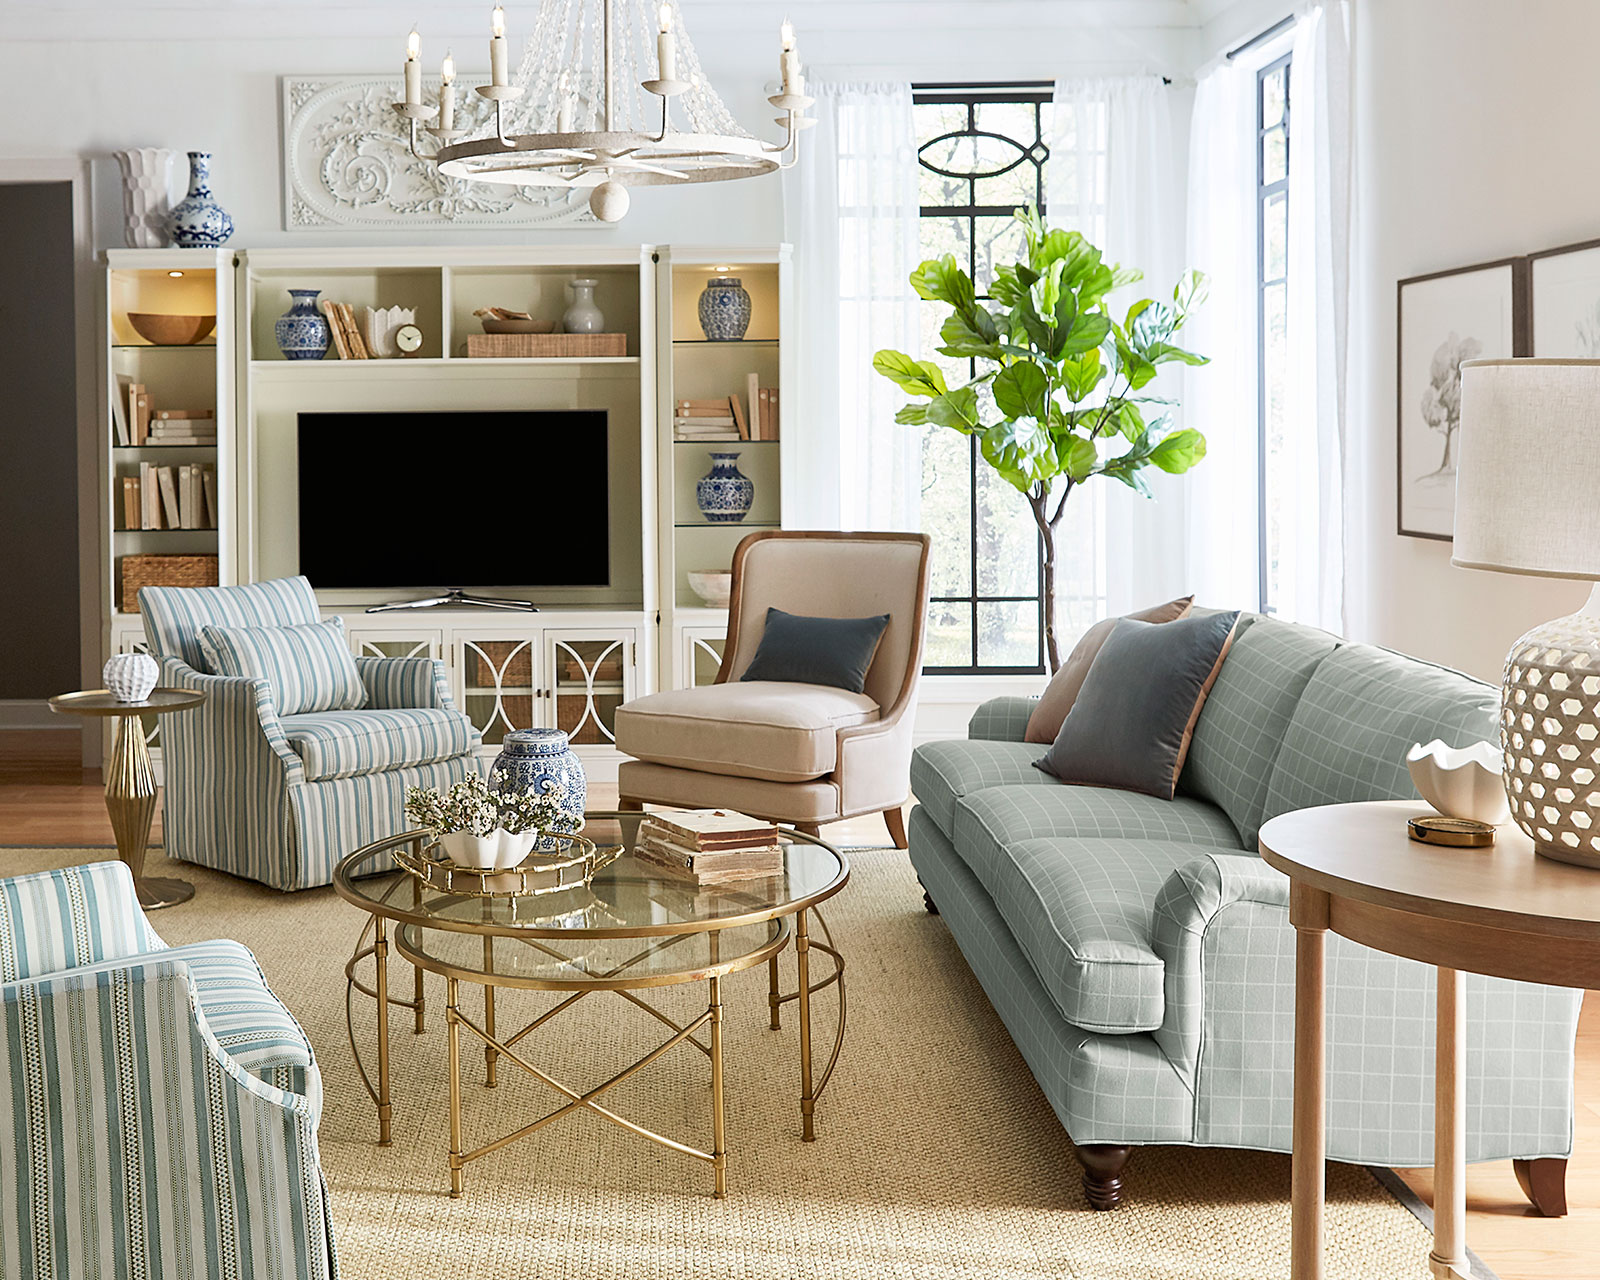 Small Living Room Ideas for More Seating and Style on Small Living Room Ideas 2019  id=94669